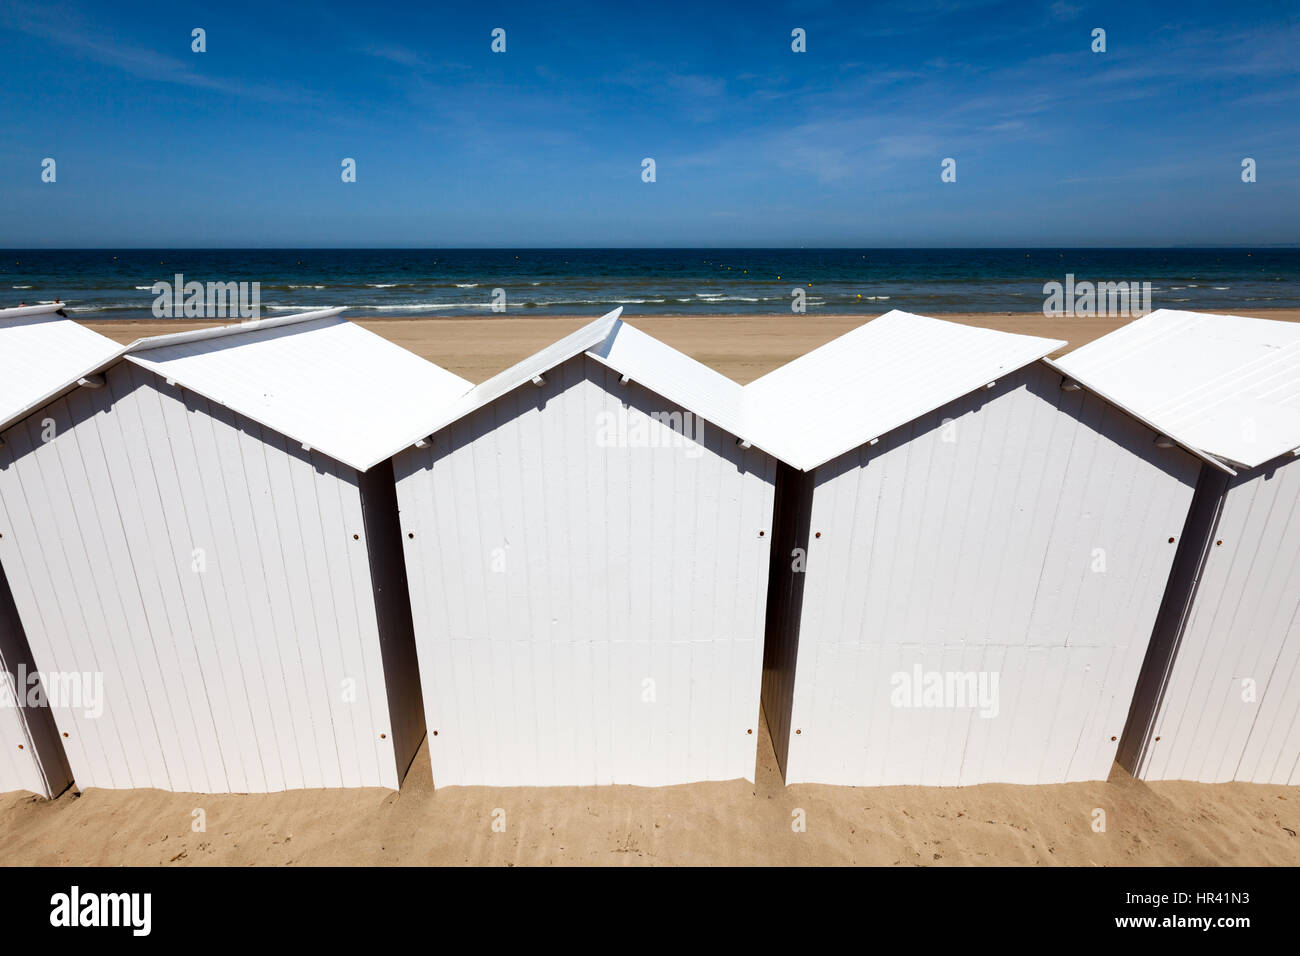 Beach huts for changing on the Normandy coast. - Stock Image